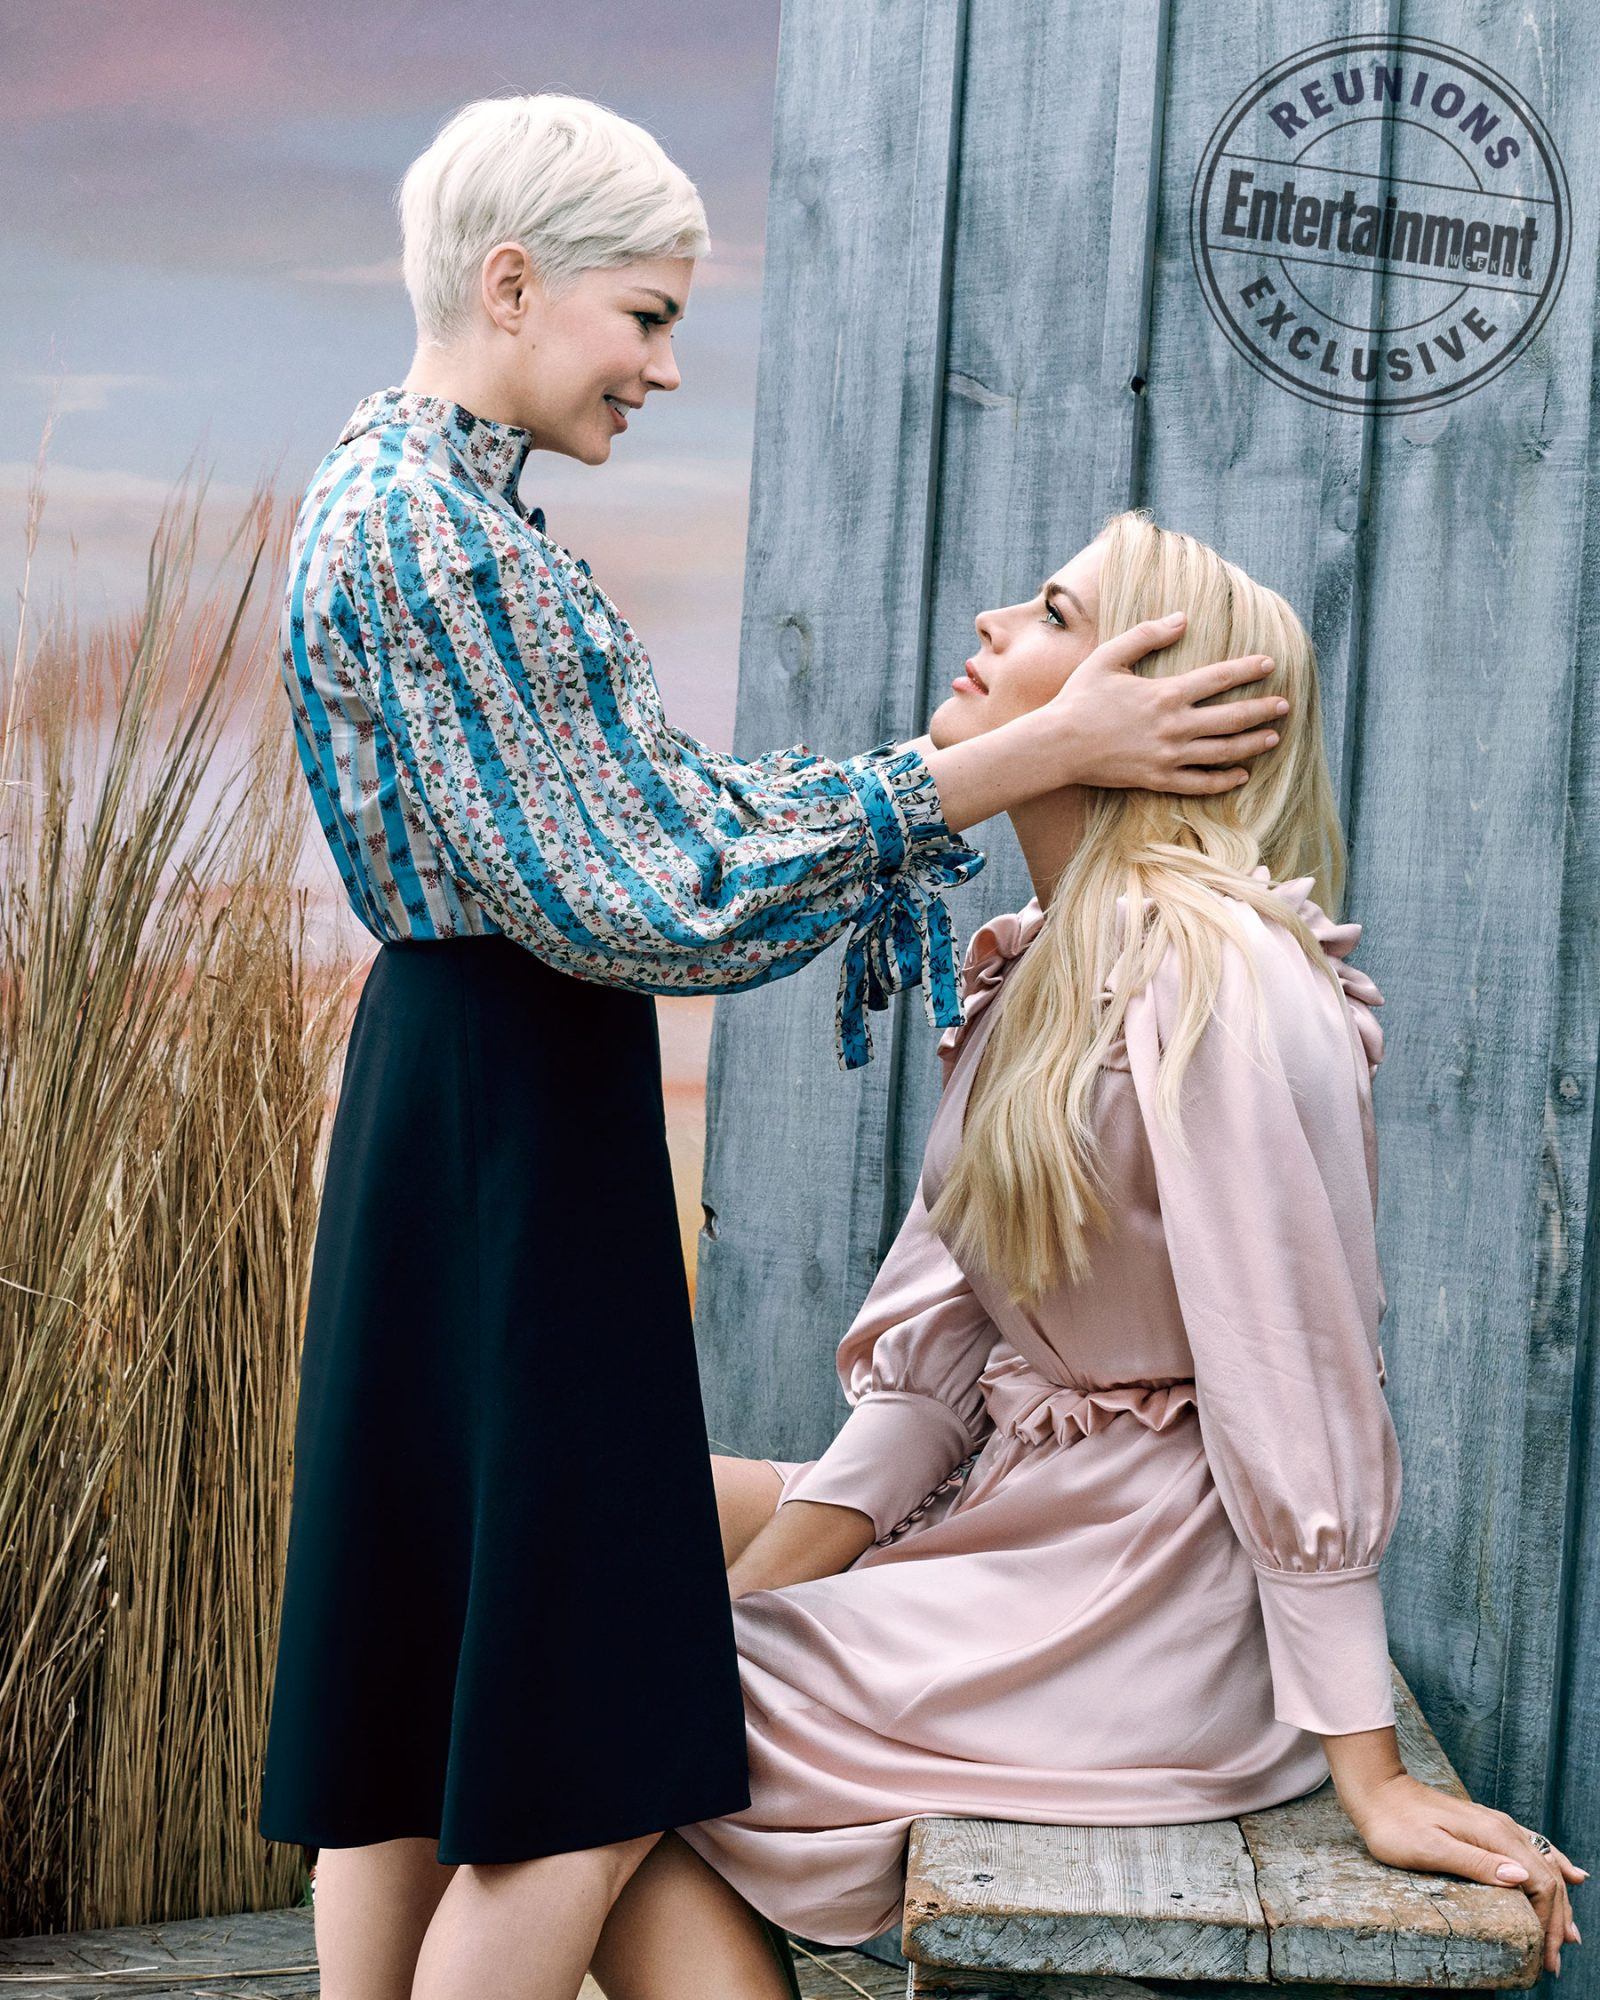 Michelle Williams (Jen Lindley) and Busy Philipps (Audrey Liddell)